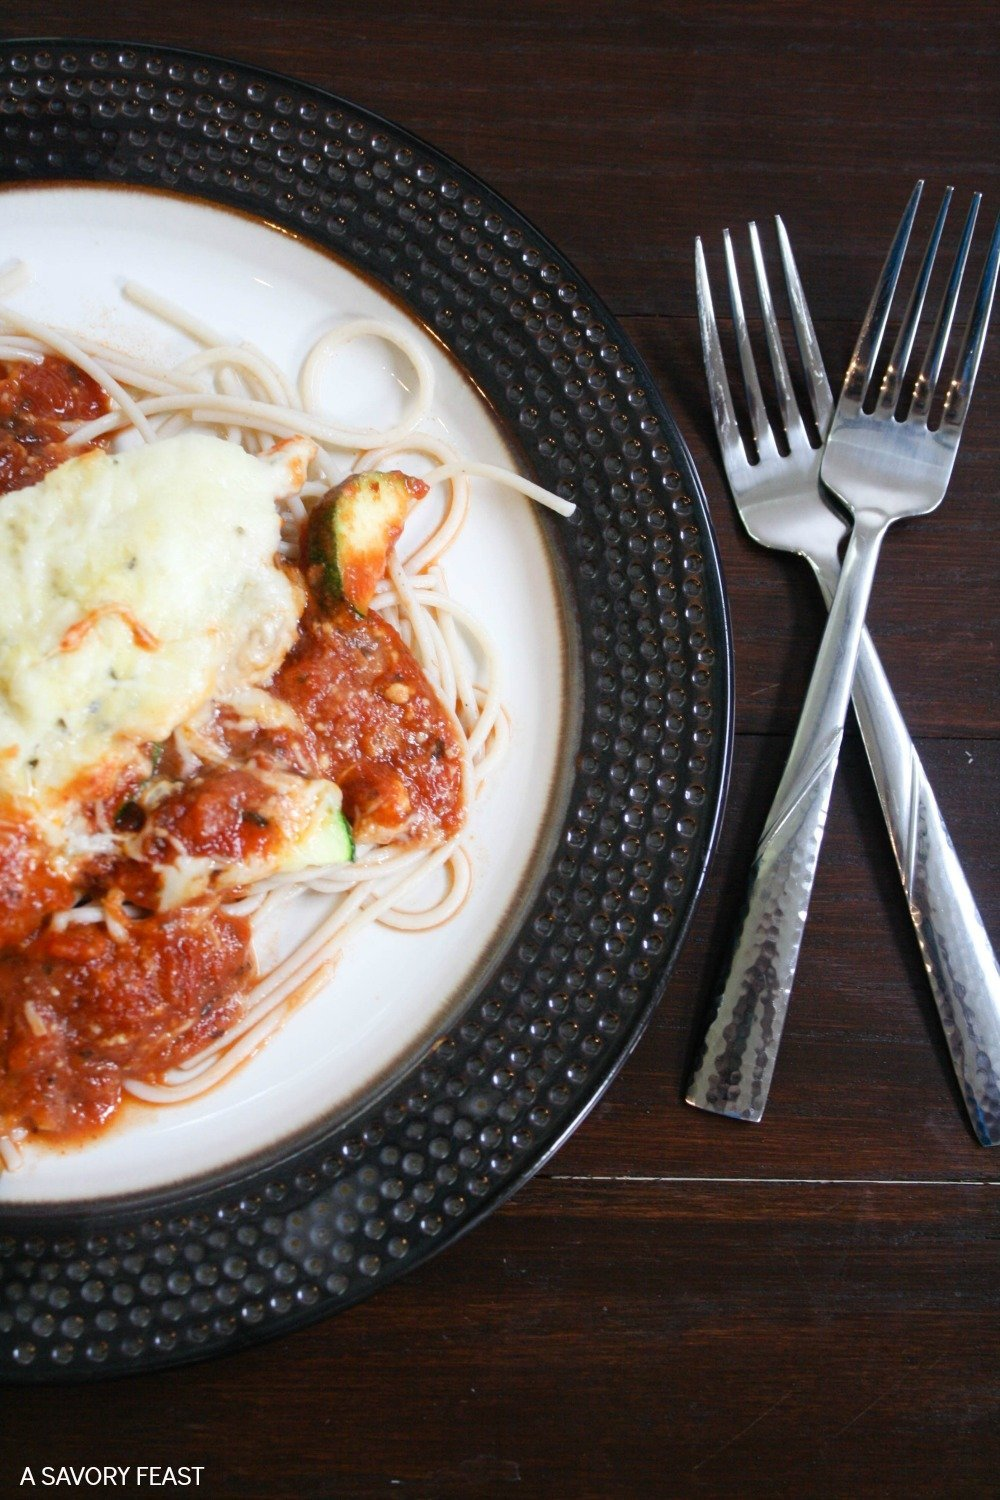 This simple dinner idea is a great way to sneak more veggies into your diet! Less than 10 minutes of prep time are needed to throw this dinner together, and it's ready to eat about 30 minutes later. This update on the classic Chicken Parmesan is one the whole family will love!